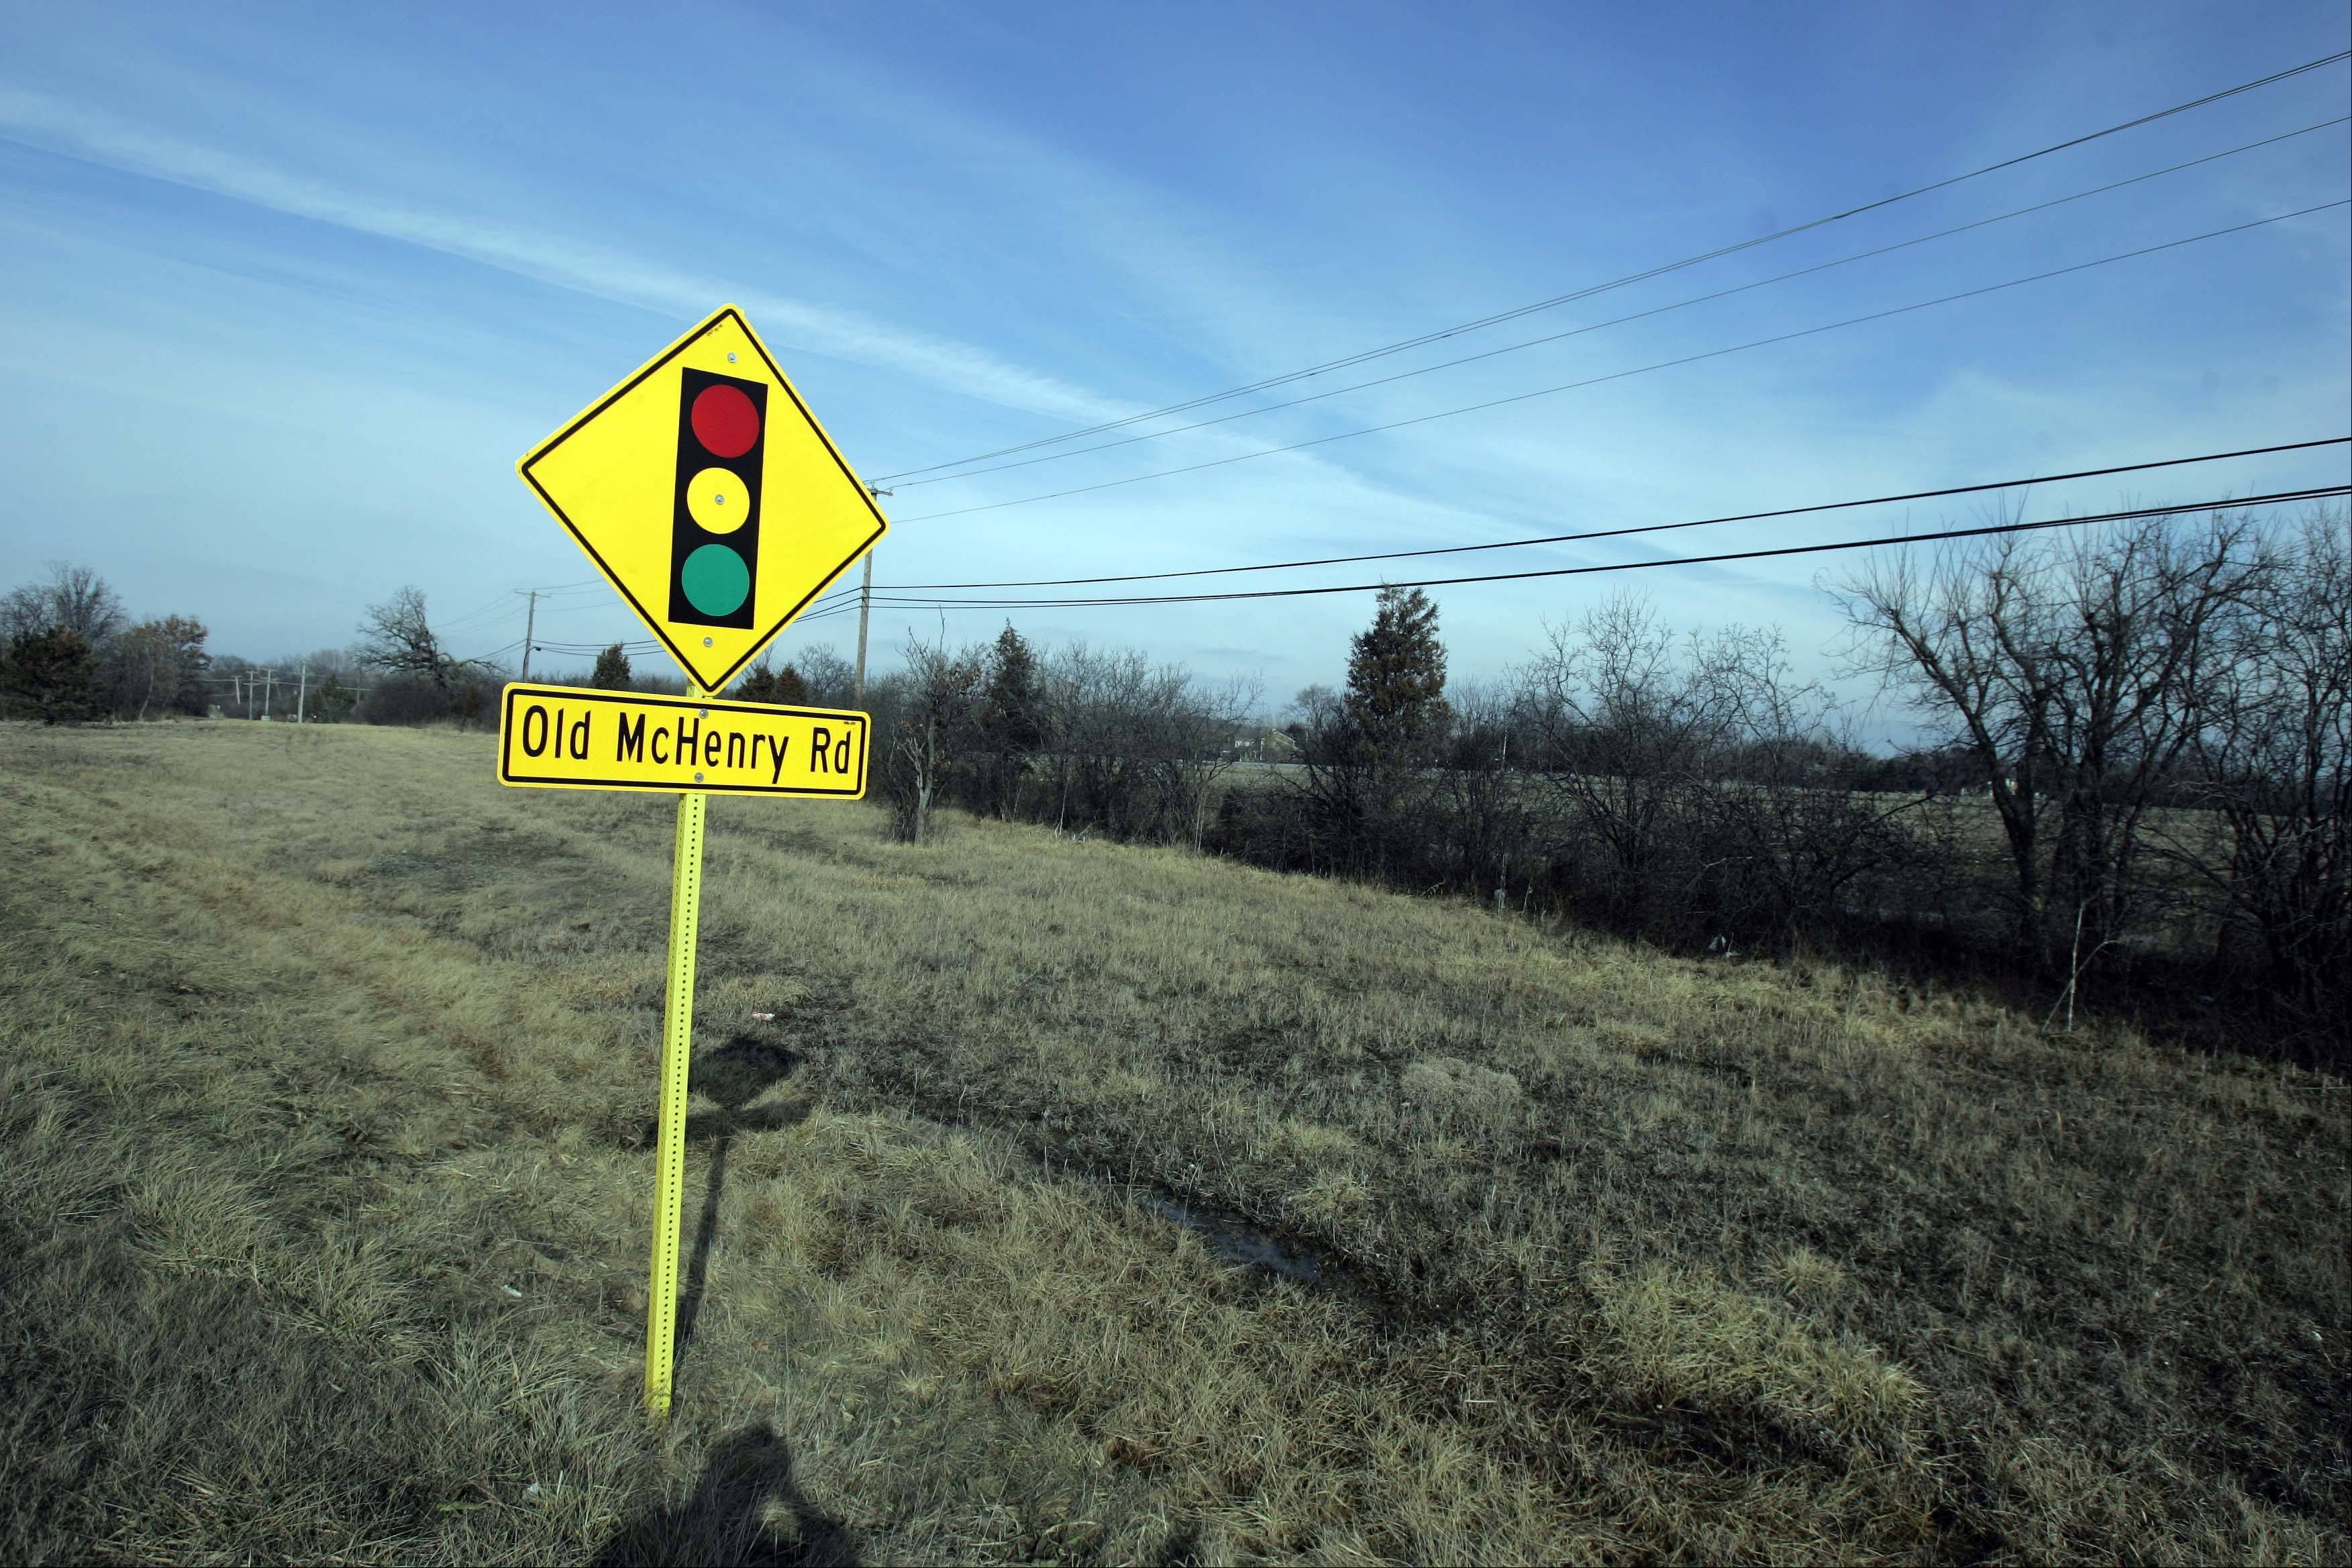 The Lake County zoning board of appeals is scheduled to hold two hearings this week, the first Tuesday, on a request to rezone a 109-acre parcel at Rand and Old McHenry roads near Hawthorn Woods so that it can be developed as a shopping center.